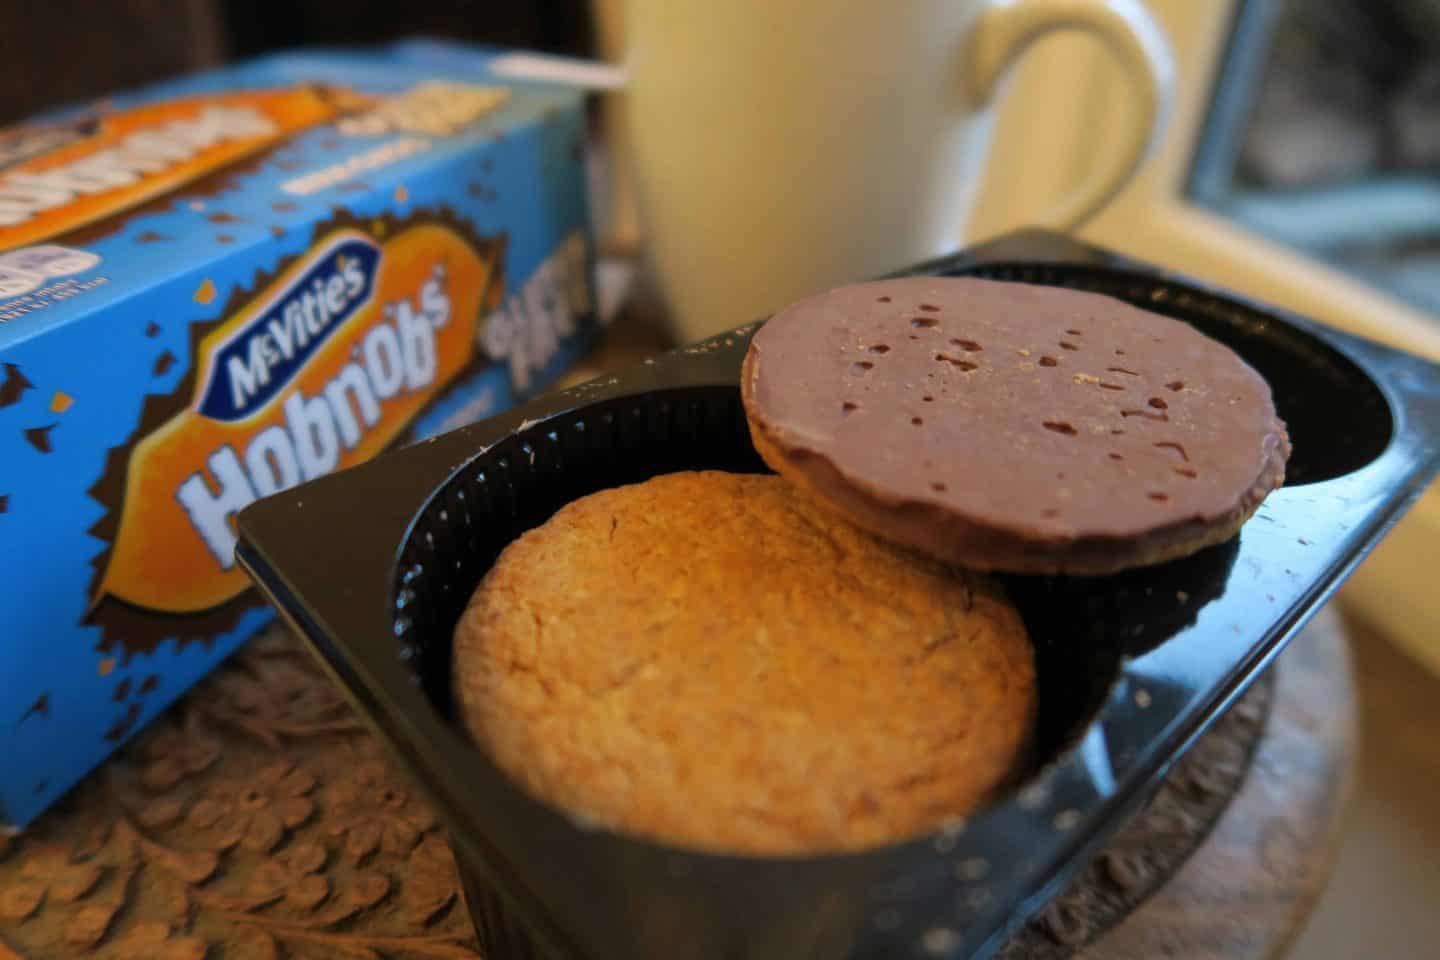 Gluten free Hobnobs are HERE – and they are pretty damn awesome